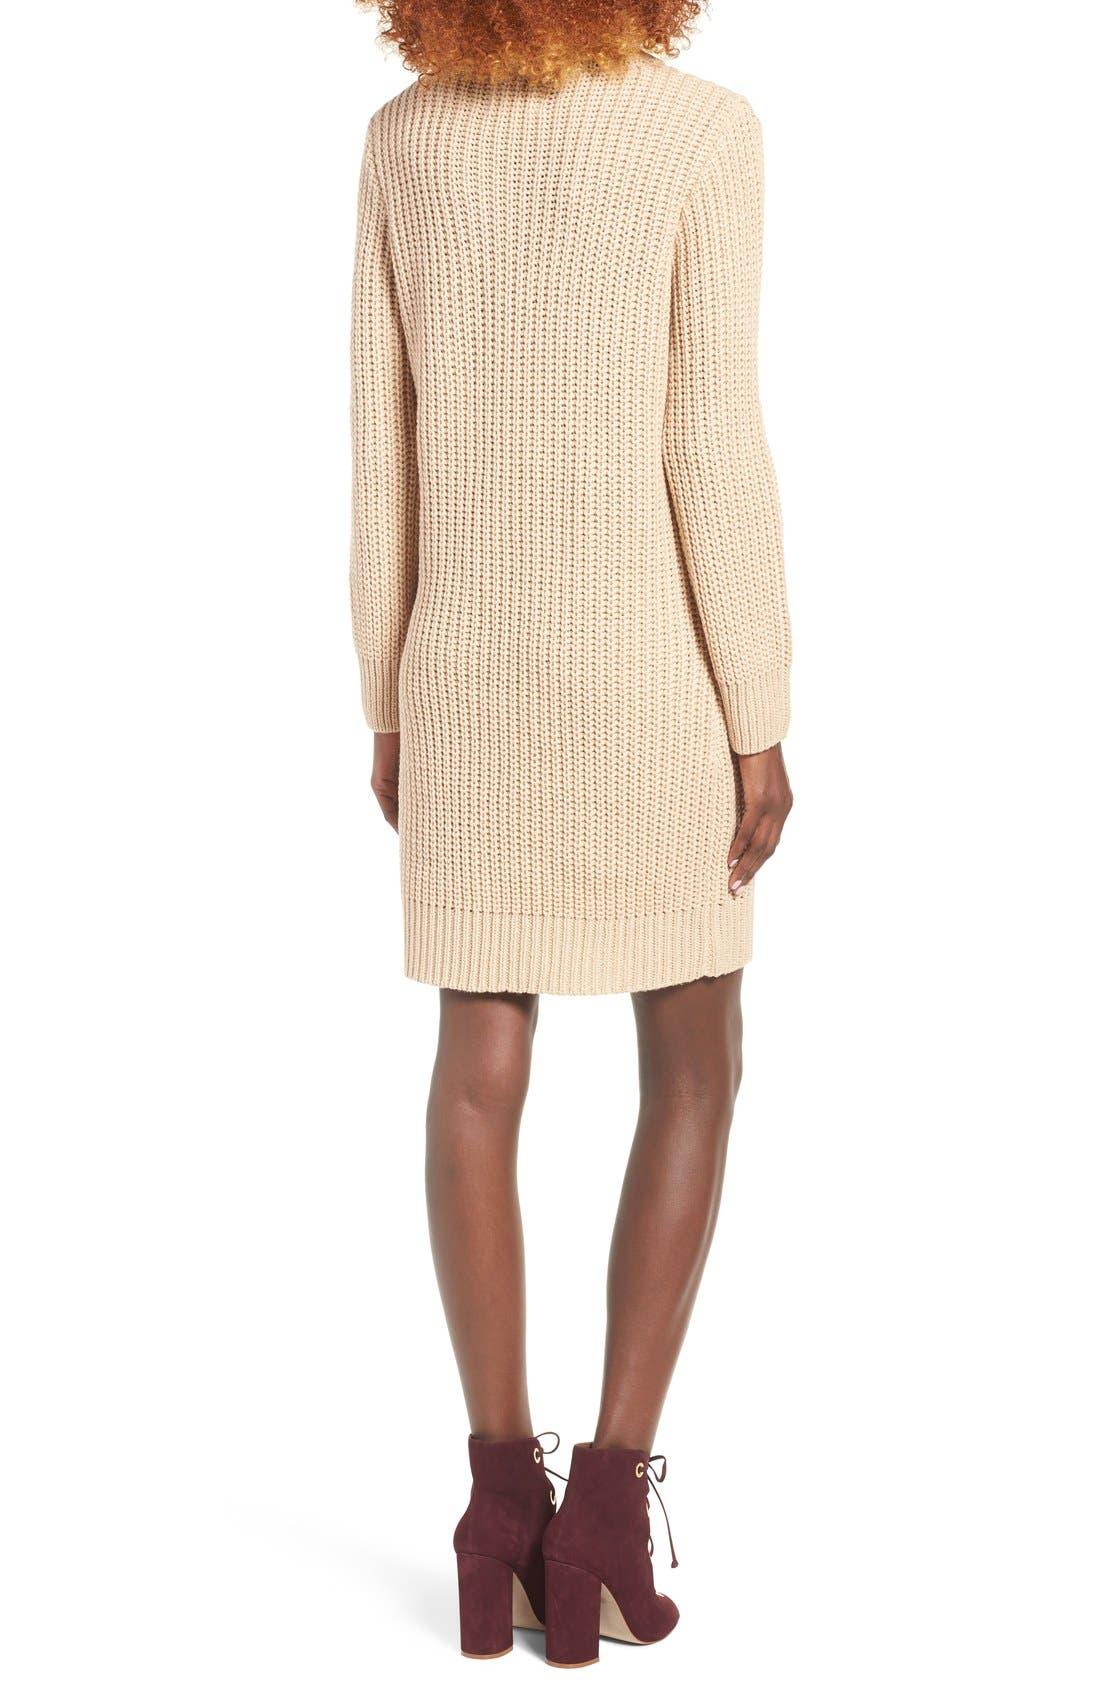 MOON RIVER, Lace-Up Sweater Dress, Alternate thumbnail 9, color, 230